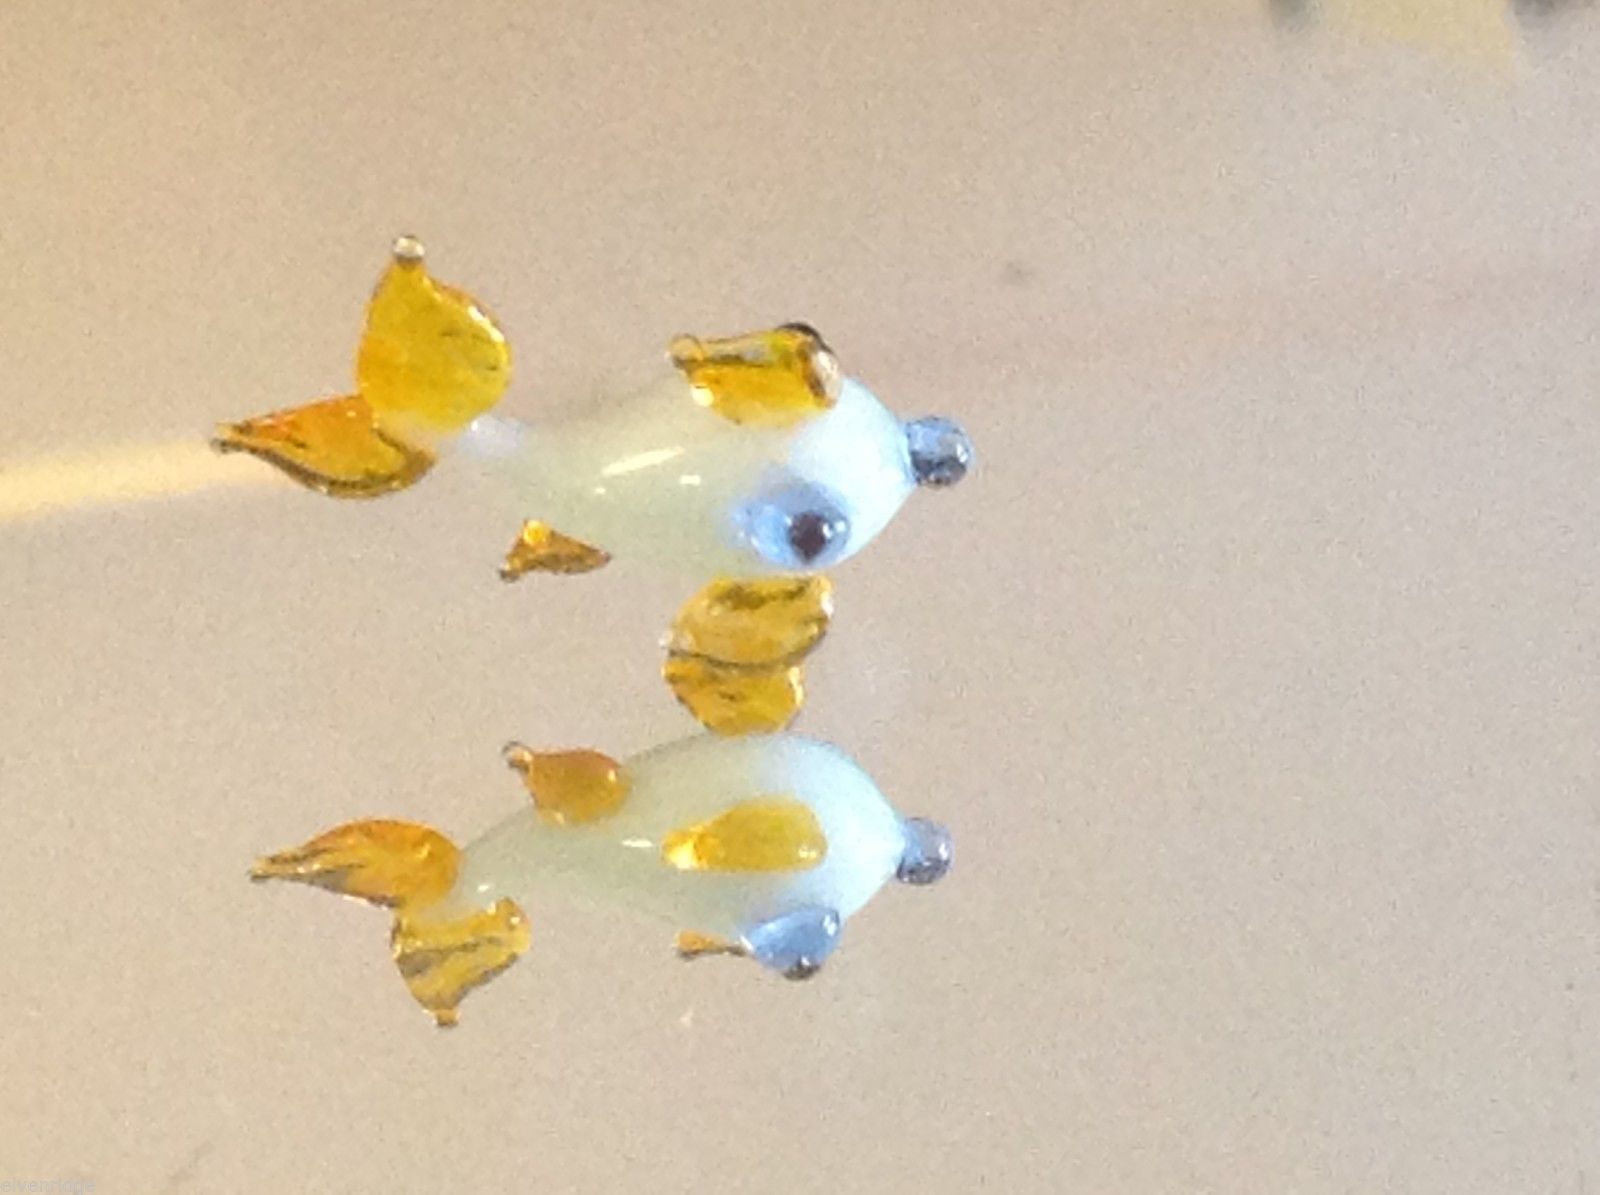 Micro miniature small hand blown glass white fish with yellow fins